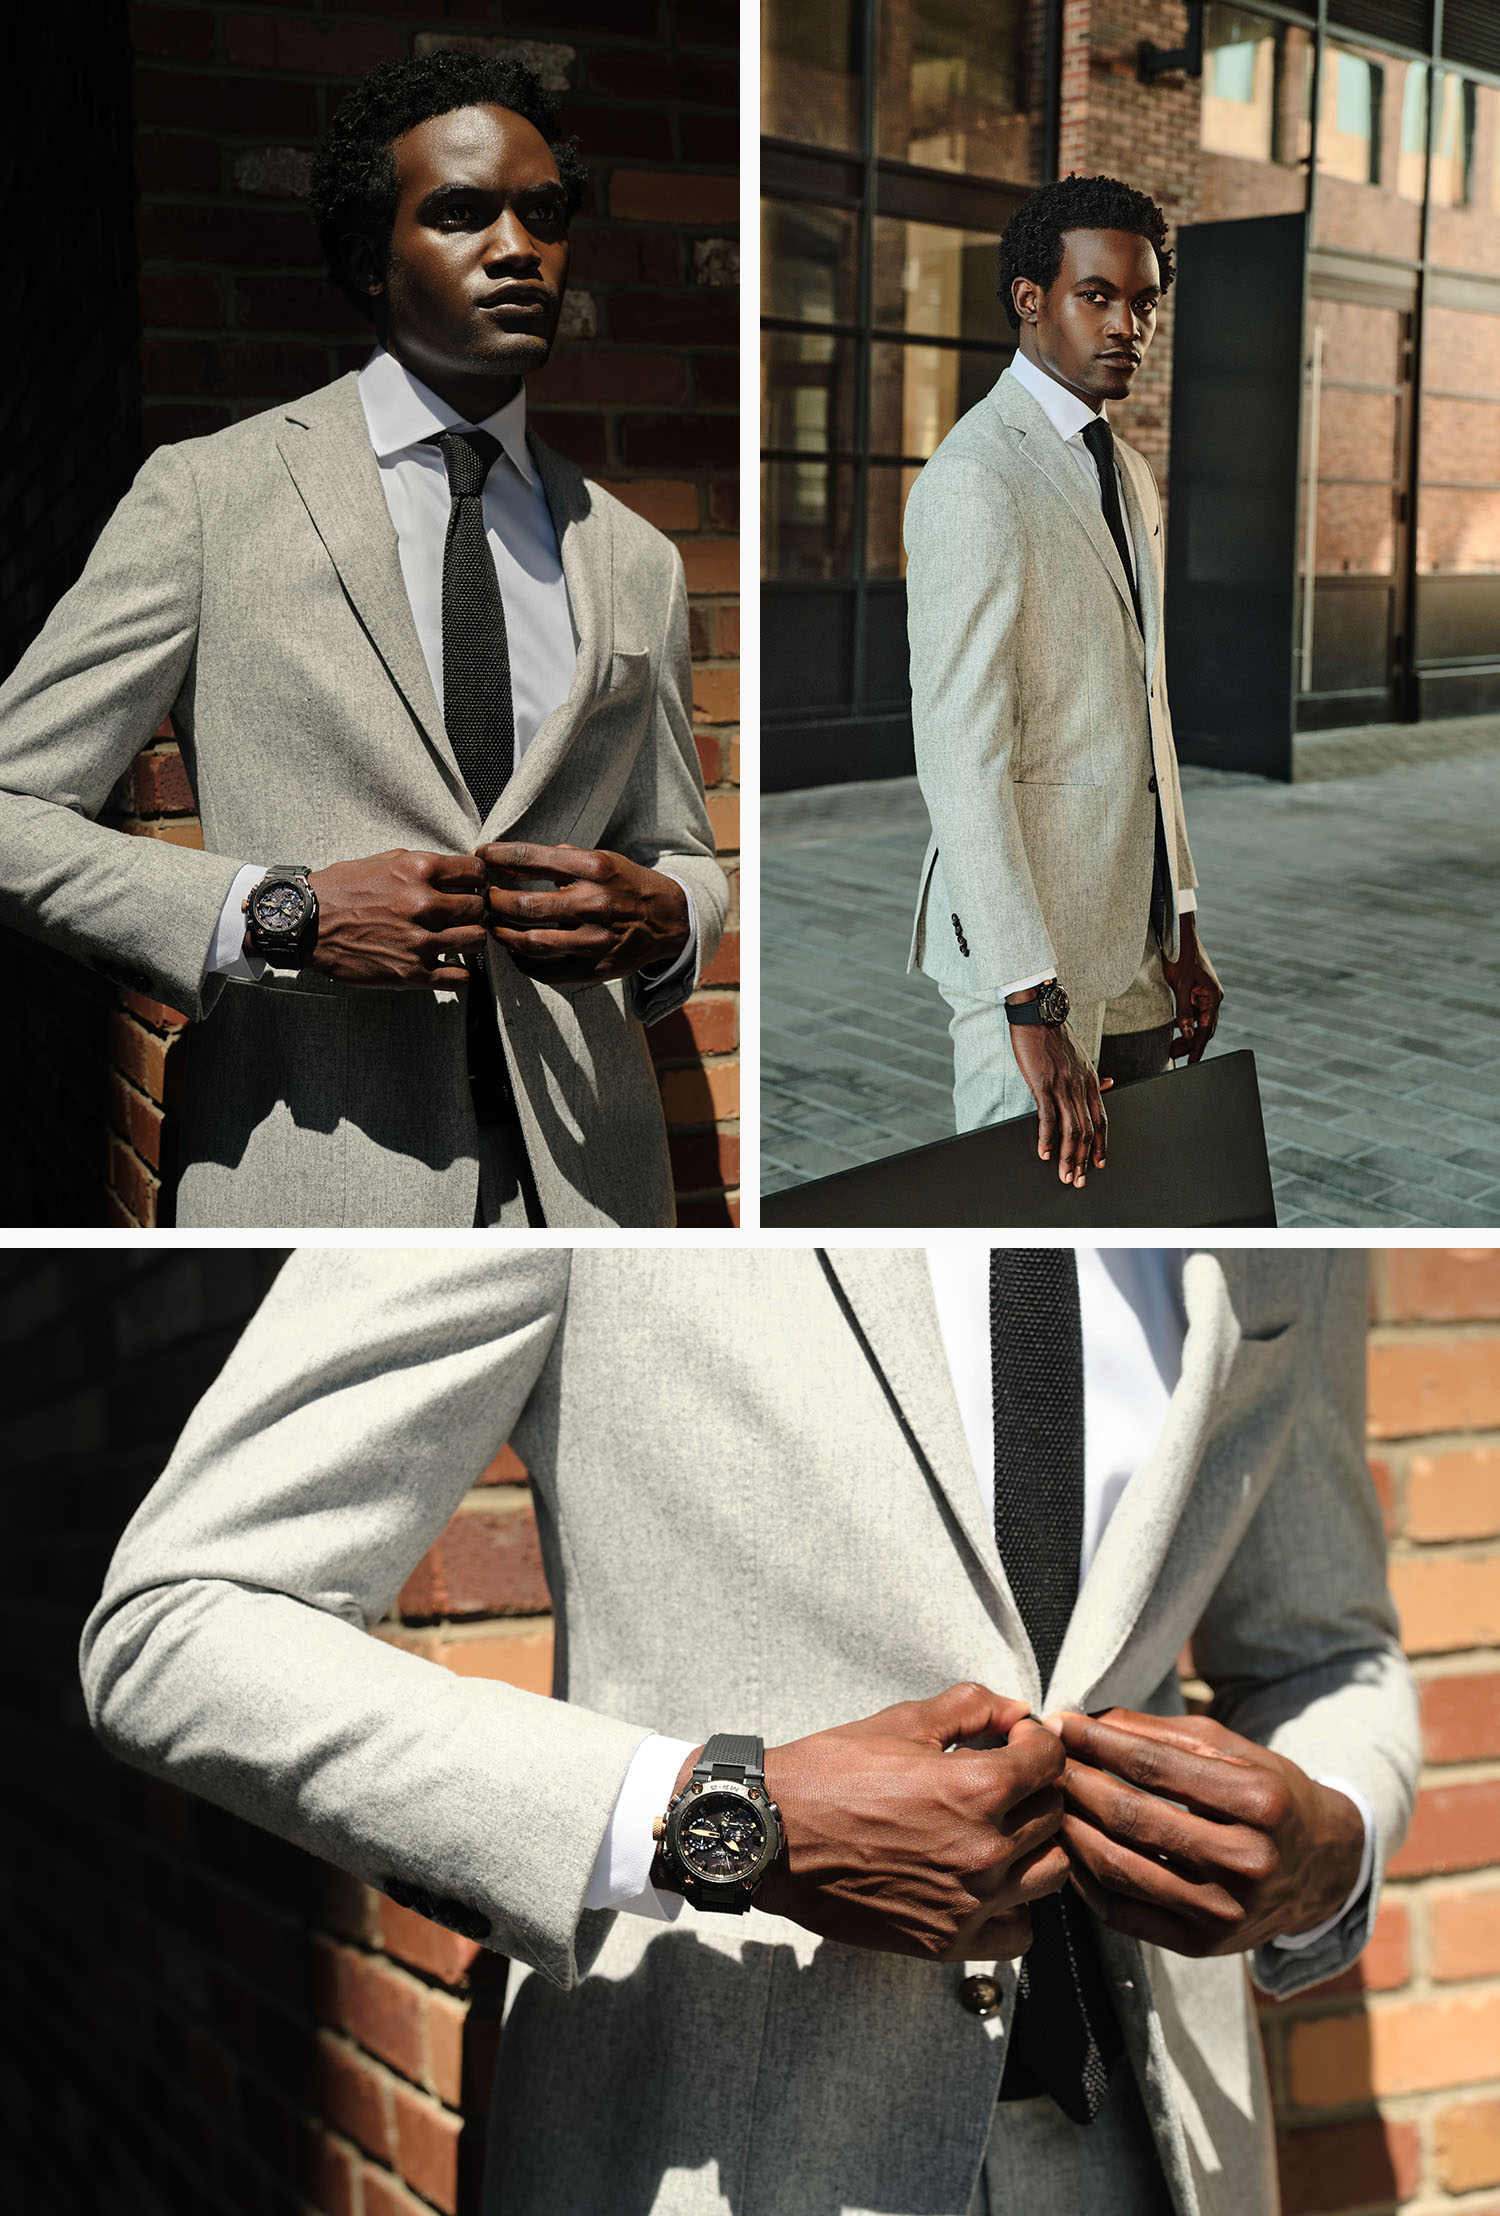 handsome man on a city street wearing a light gray flannel suit, black tie, white shirt and a casio g shock watch